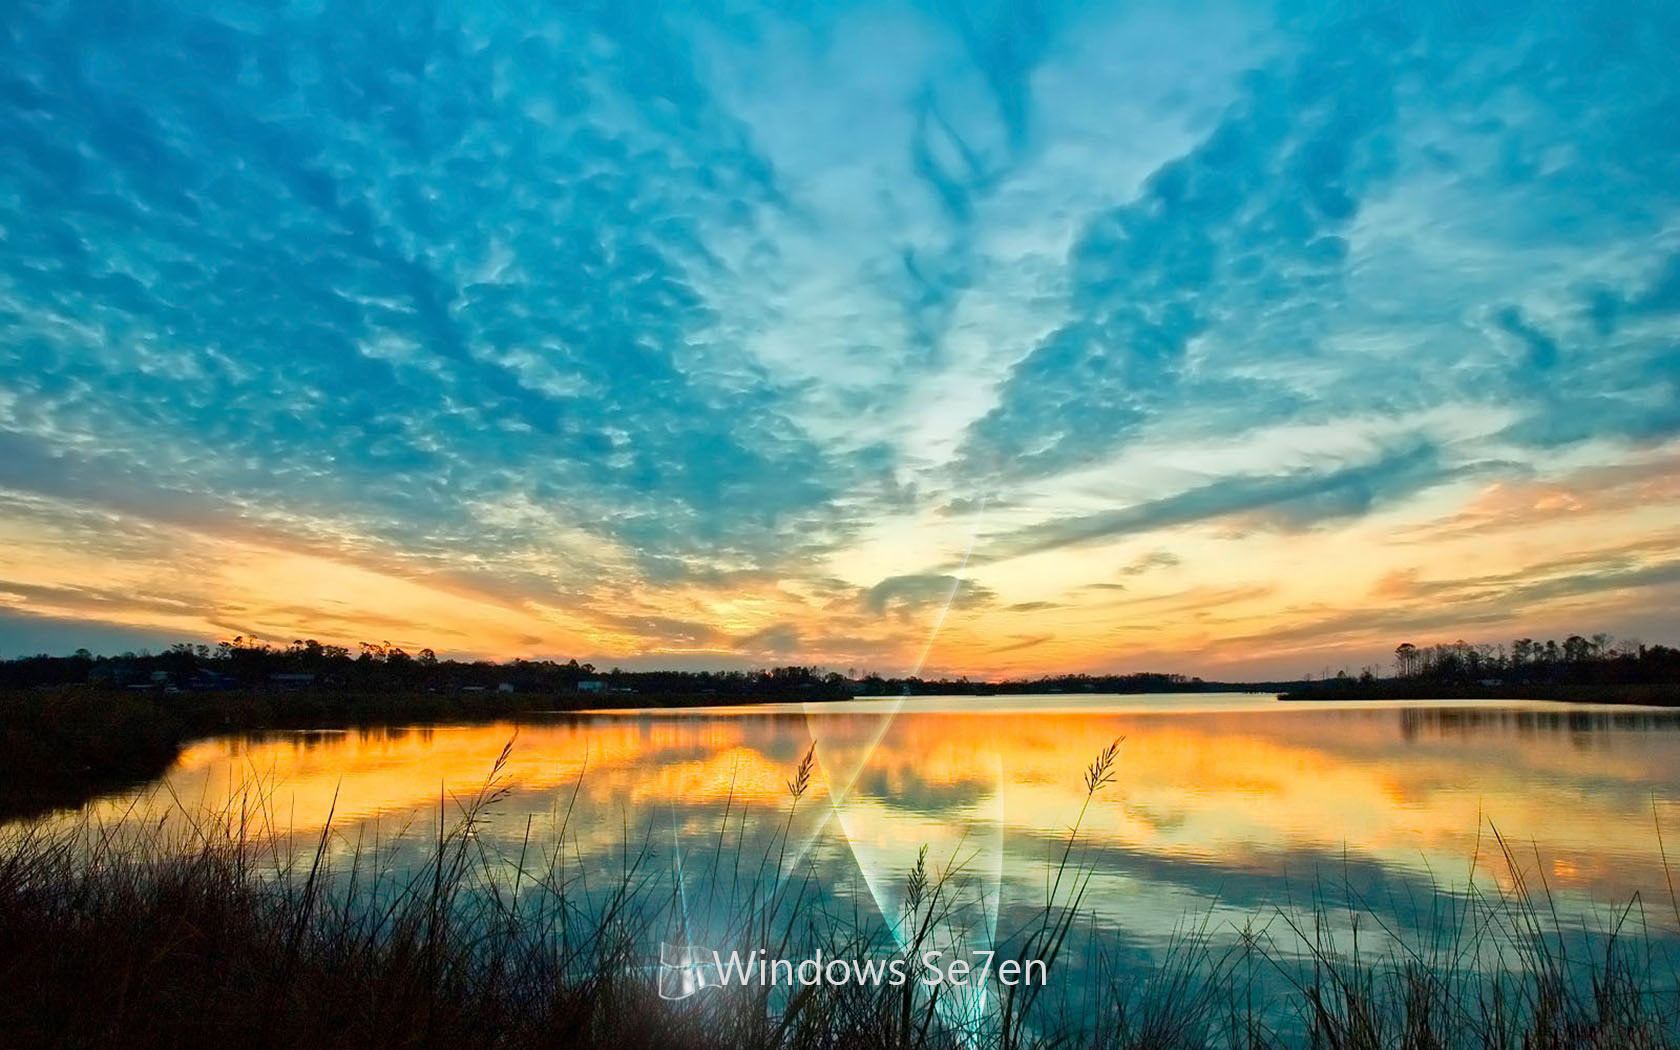 free windows wallpaper for computer - wallpapersafari